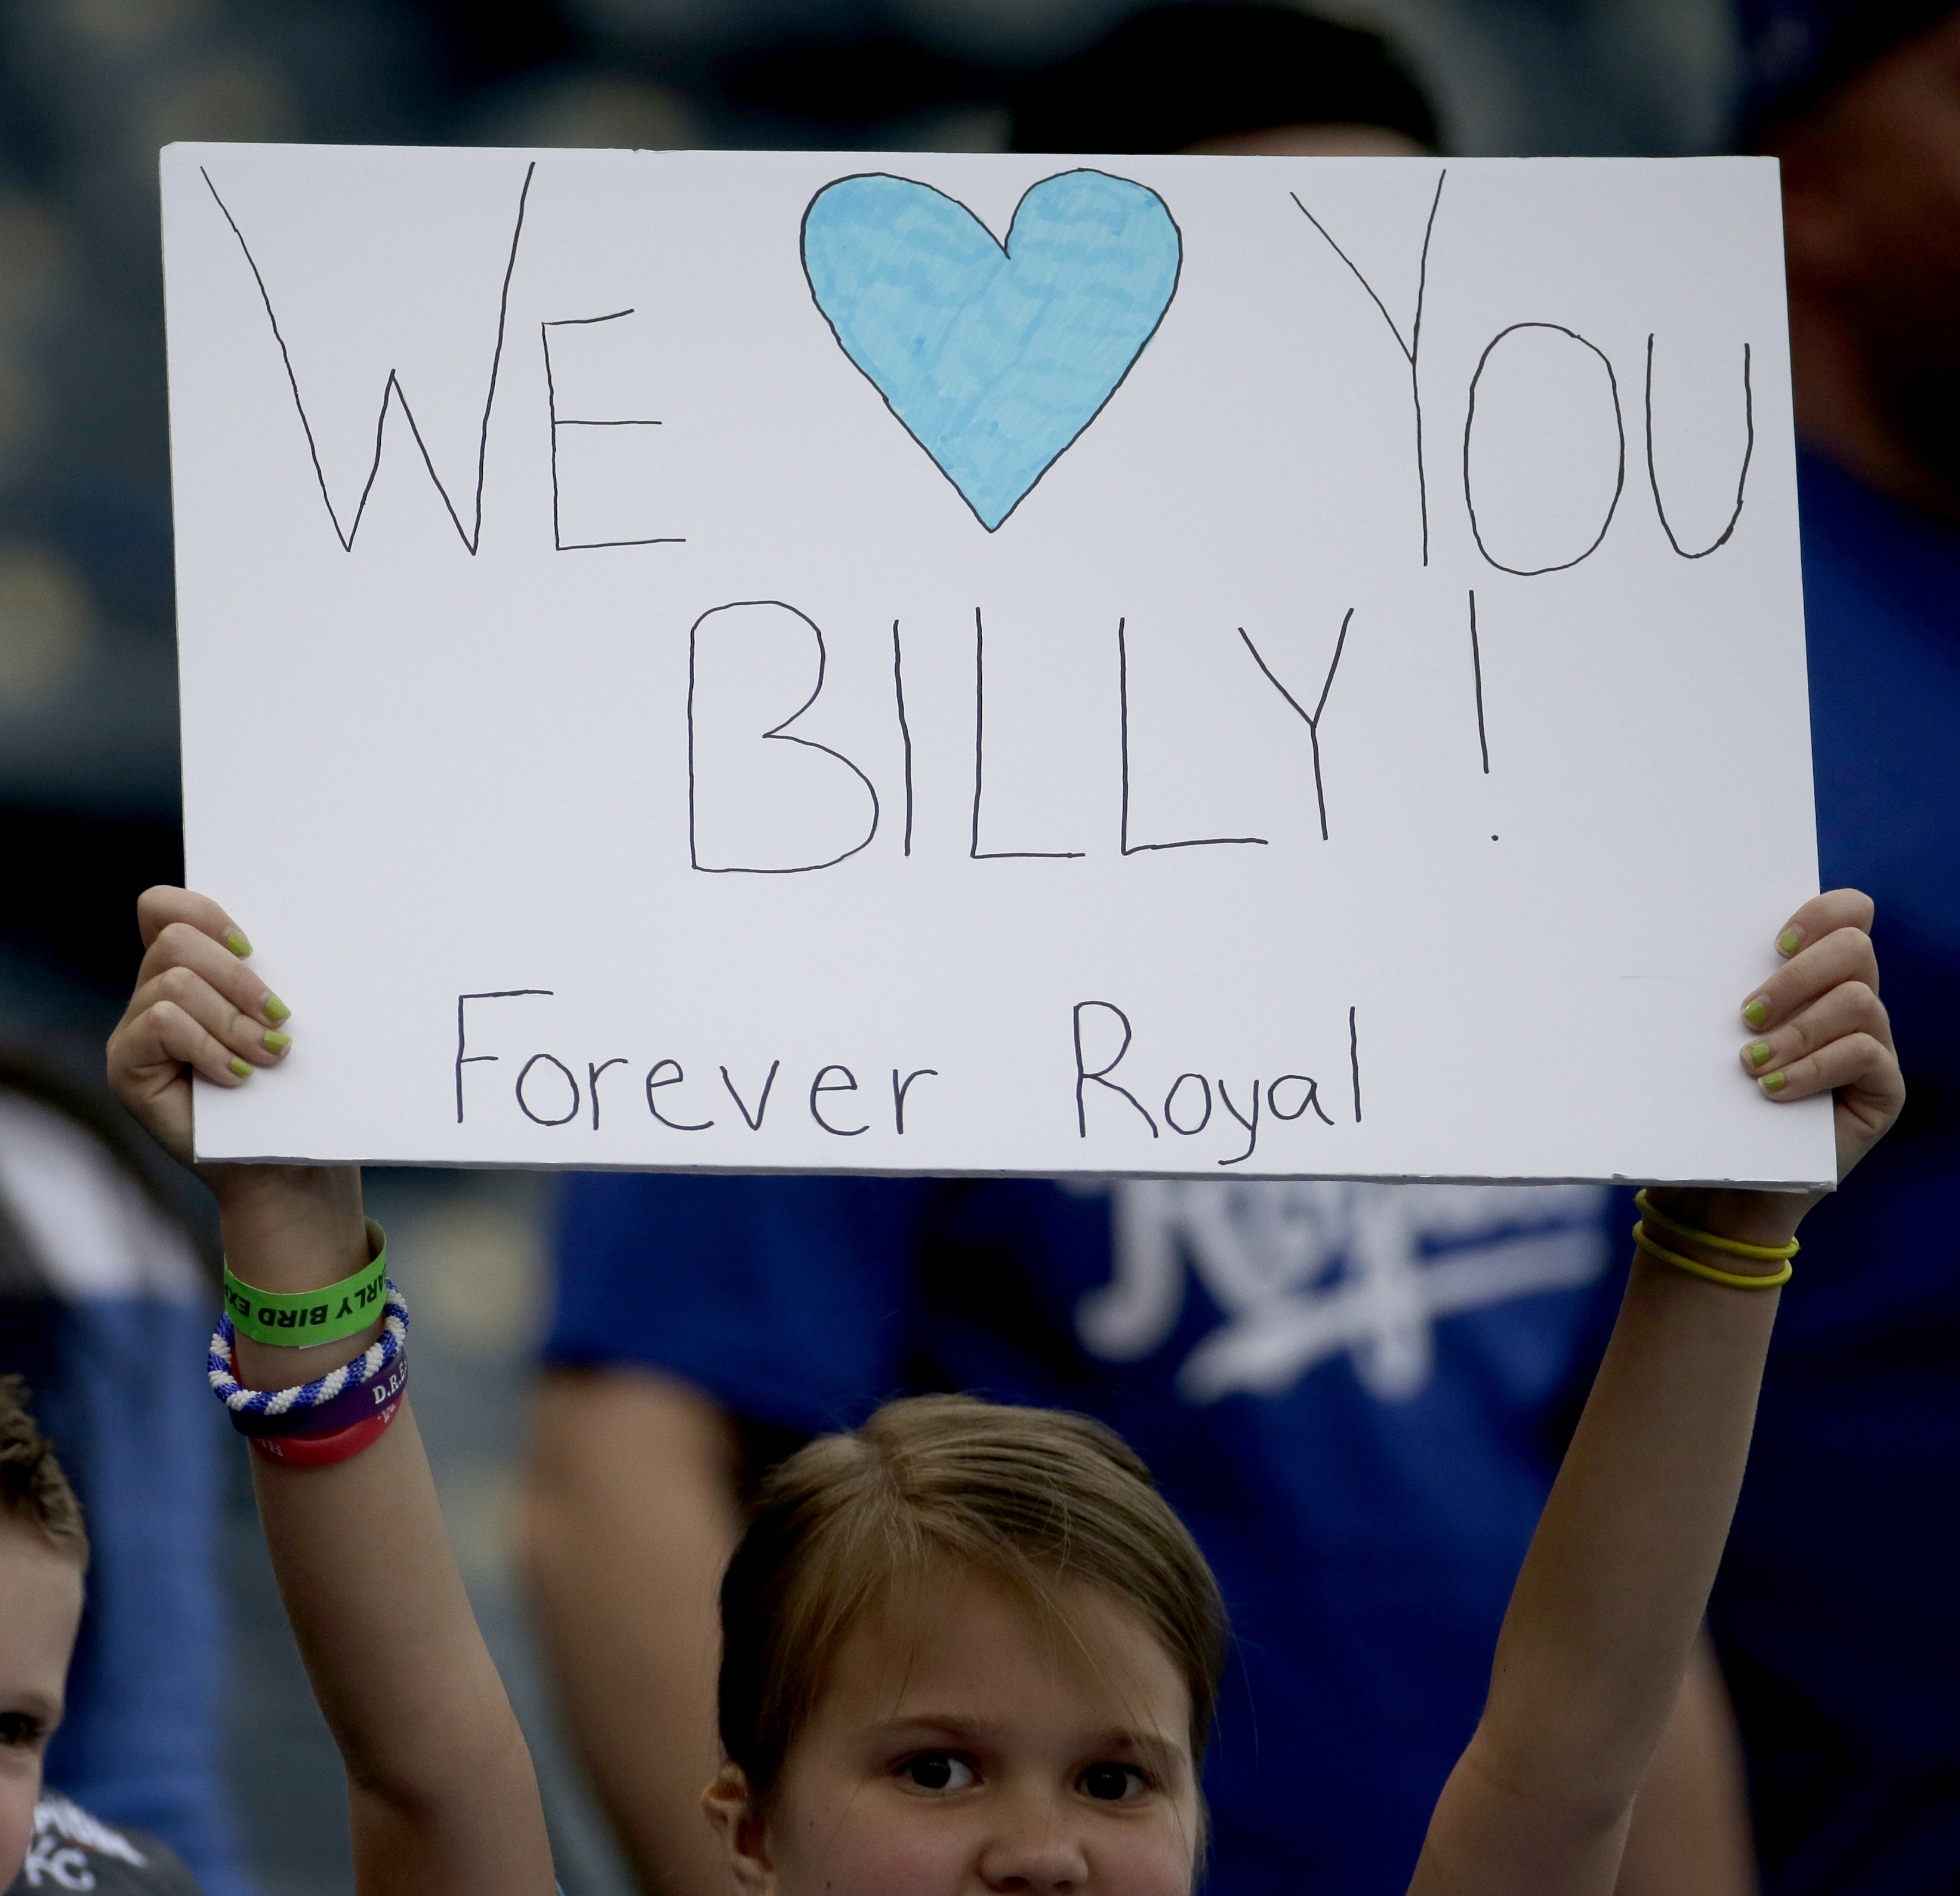 A fan holds a sign referring to the return of former Kansas City Royals player Billy Butler on his first trip back to Kauffman Stadium since being traded to the Oakland Athletics before a baseball game Friday, April 17, 2015, in Kansas City, Mo. (AP Photo